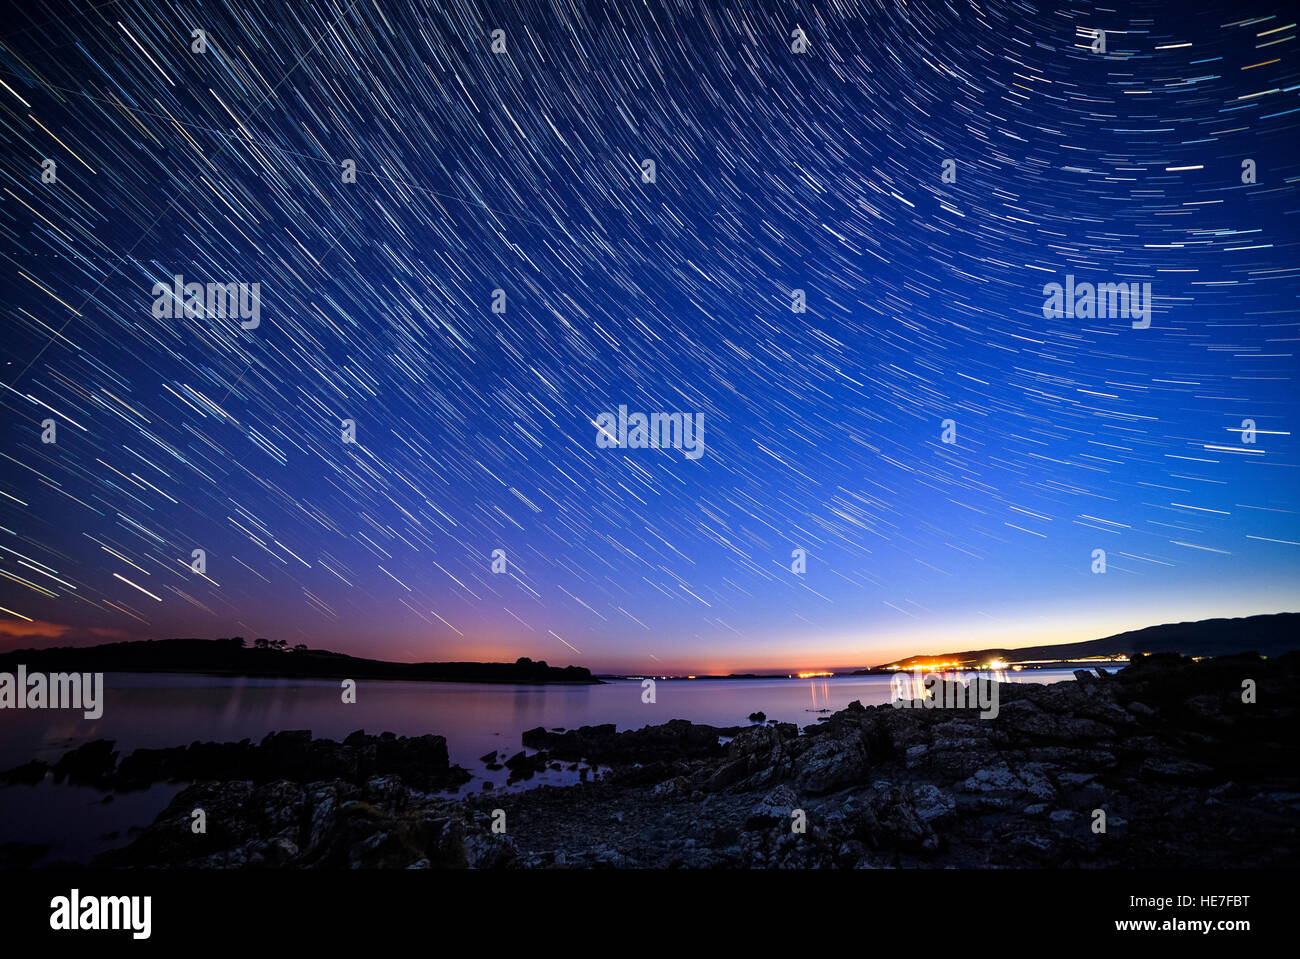 Long exposure star trails, Stary night from Carrick, Solway Firth, near Gatehouse of Fleet, Dumfries & Galloway, - Stock Image